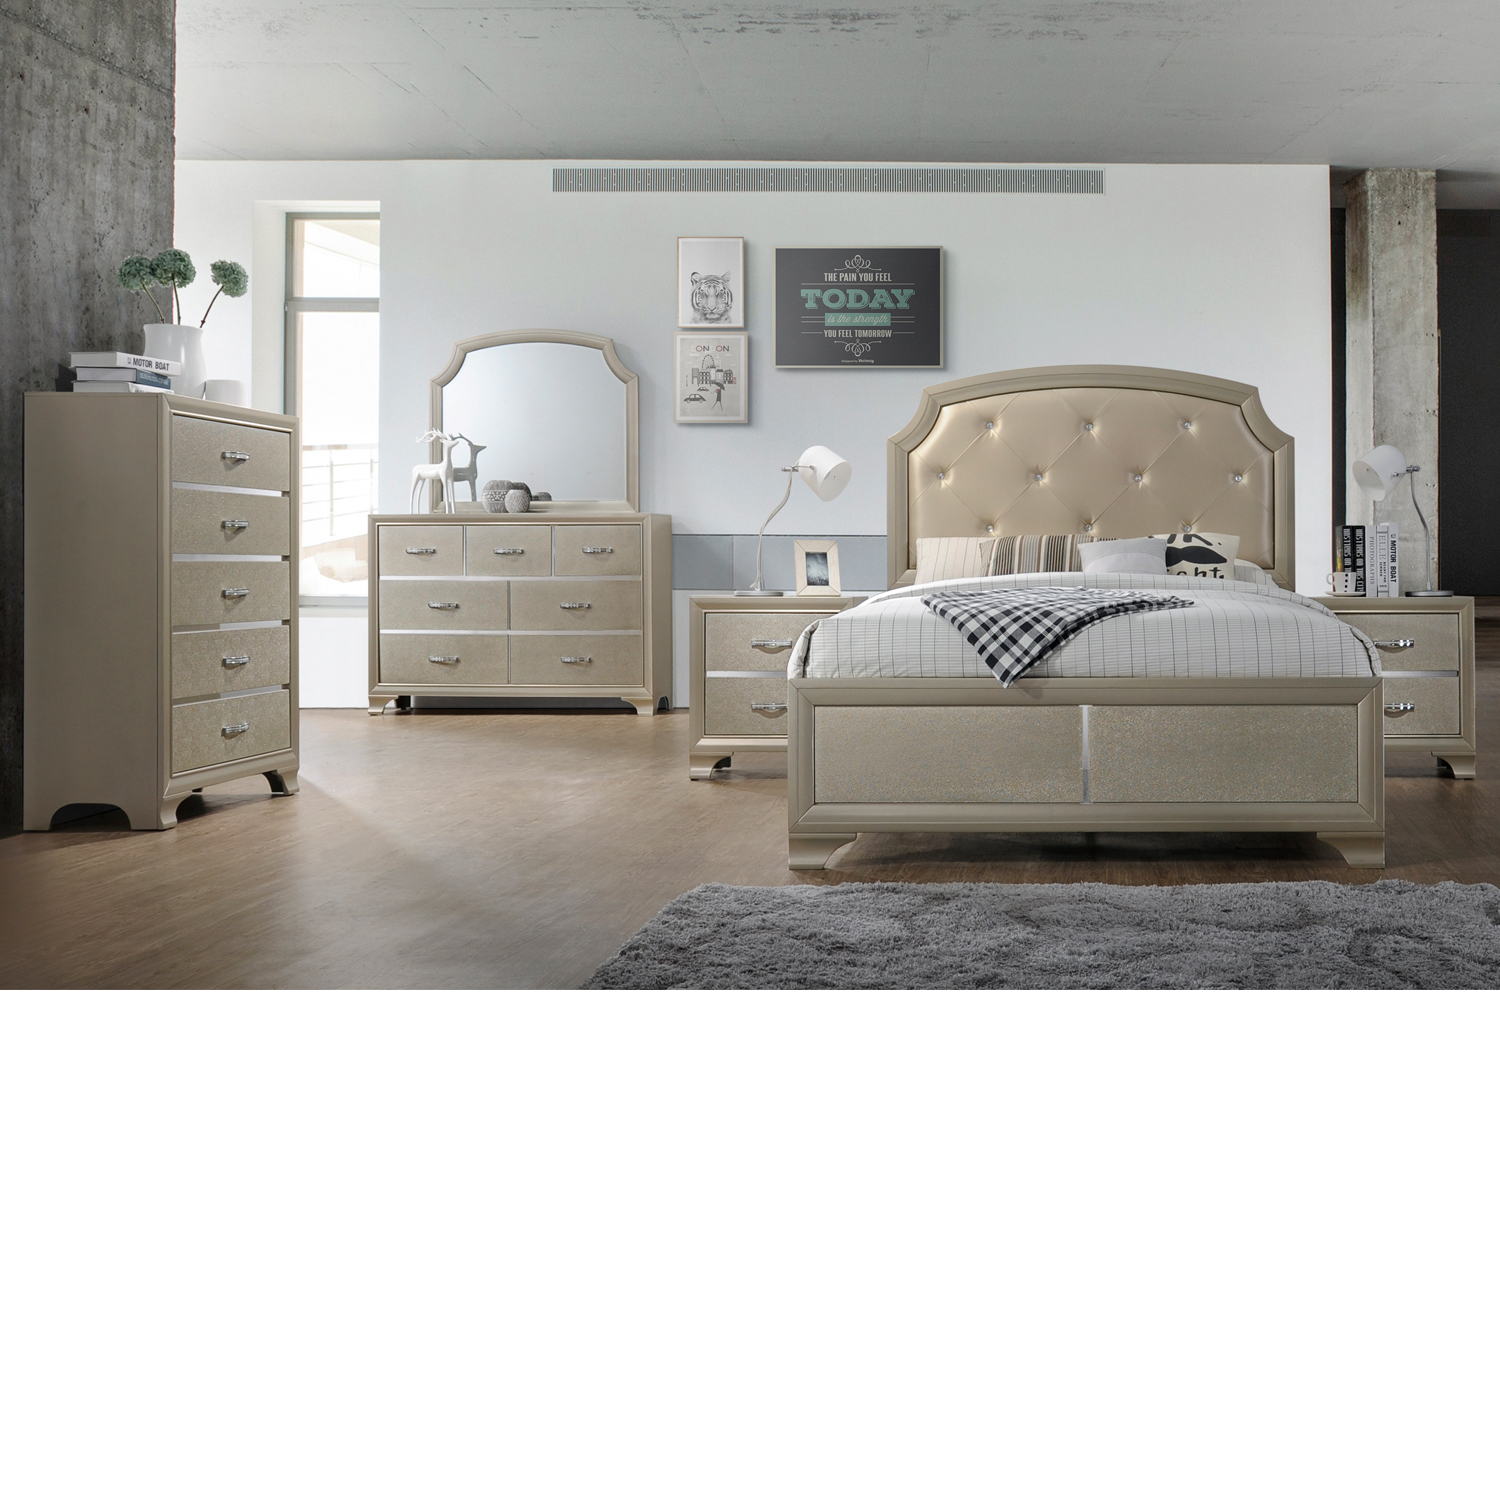 Home Source King Bed/Dresser/Mirror/Night stand